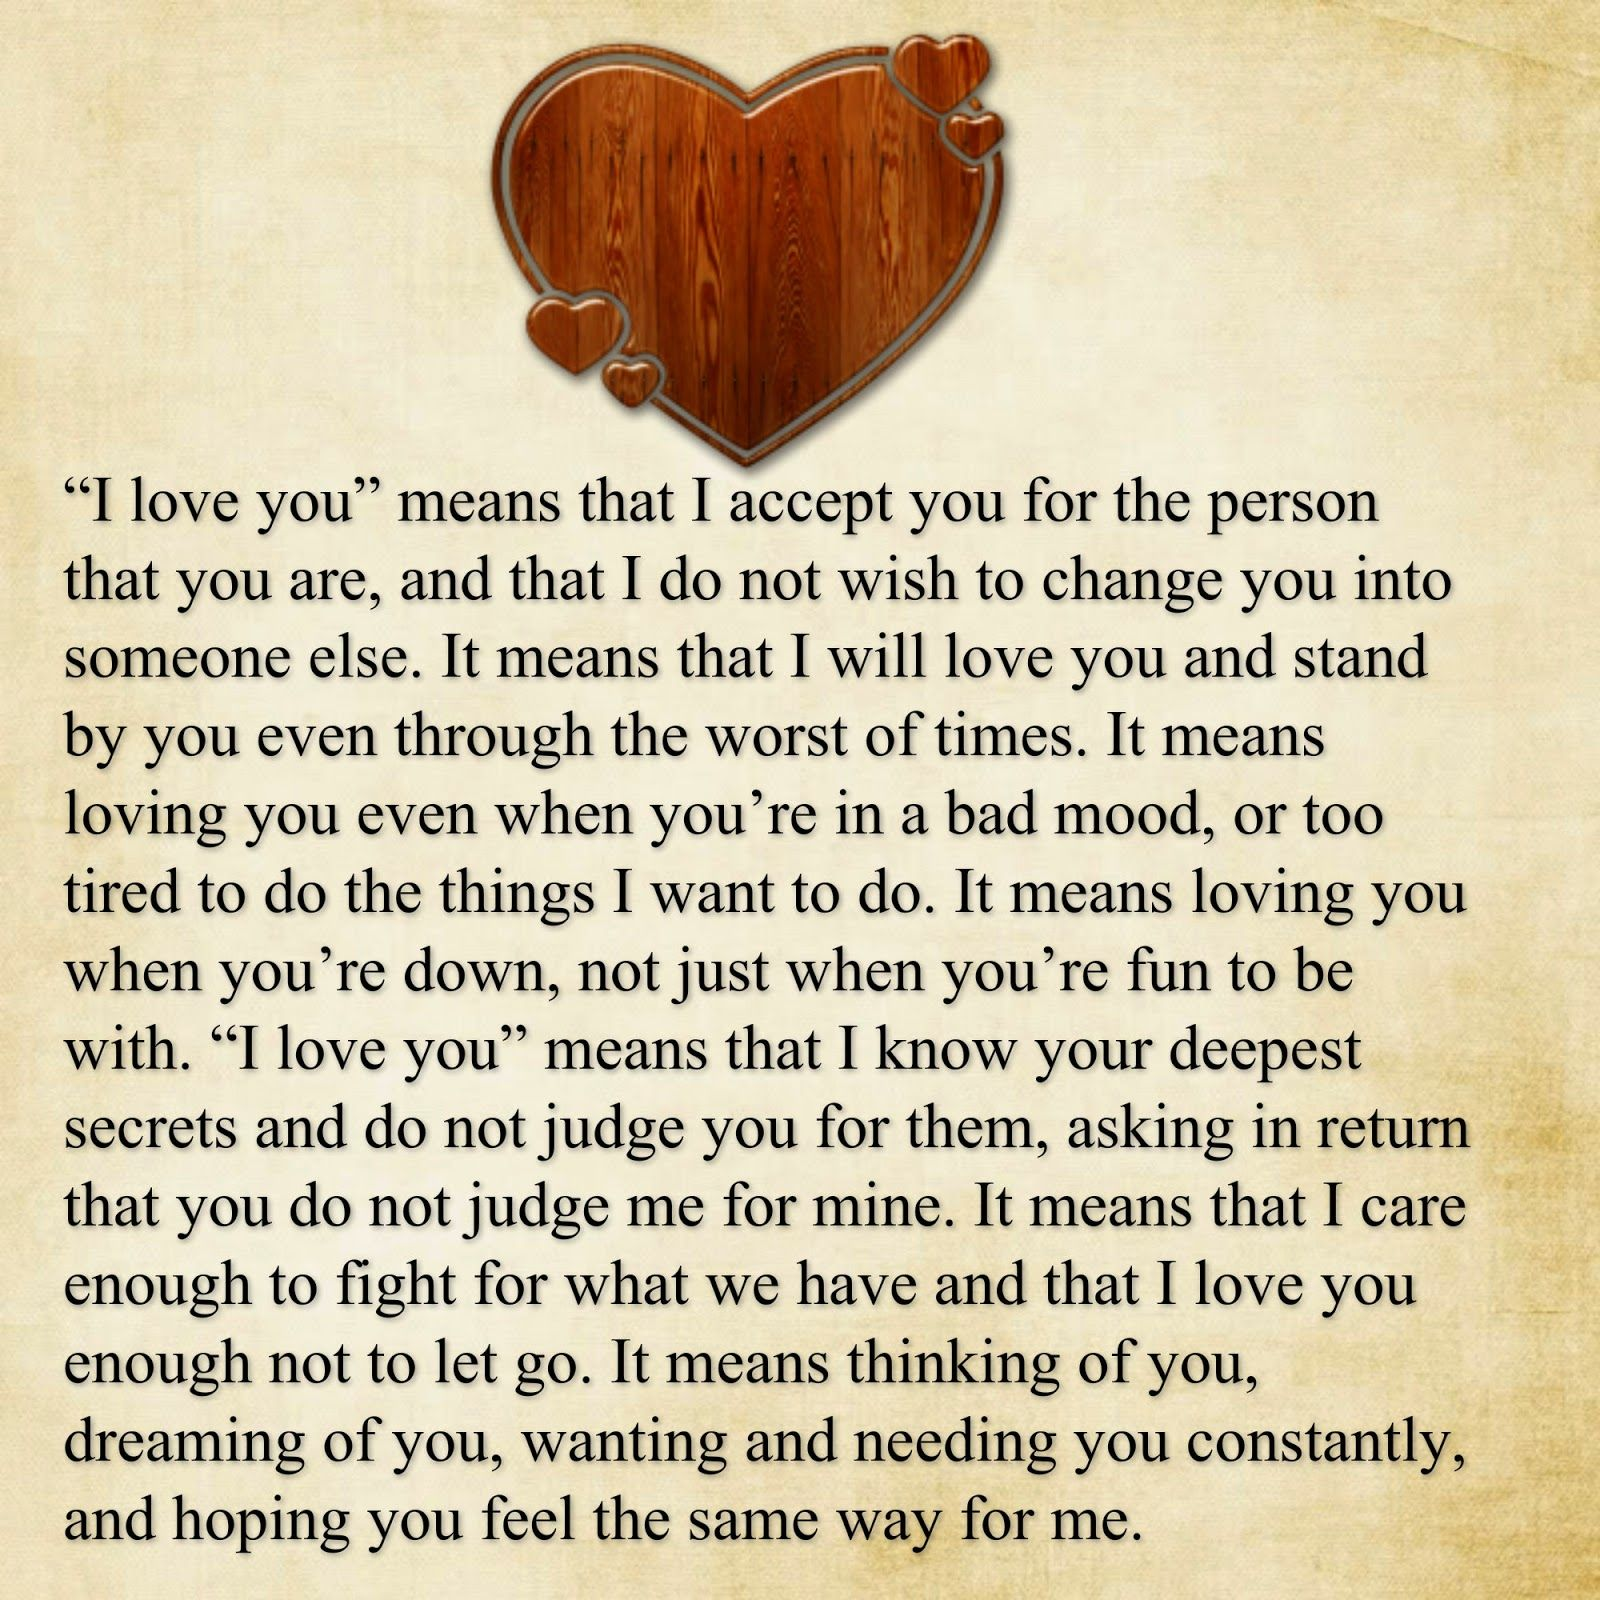 Awesome Quotes: I love you means: